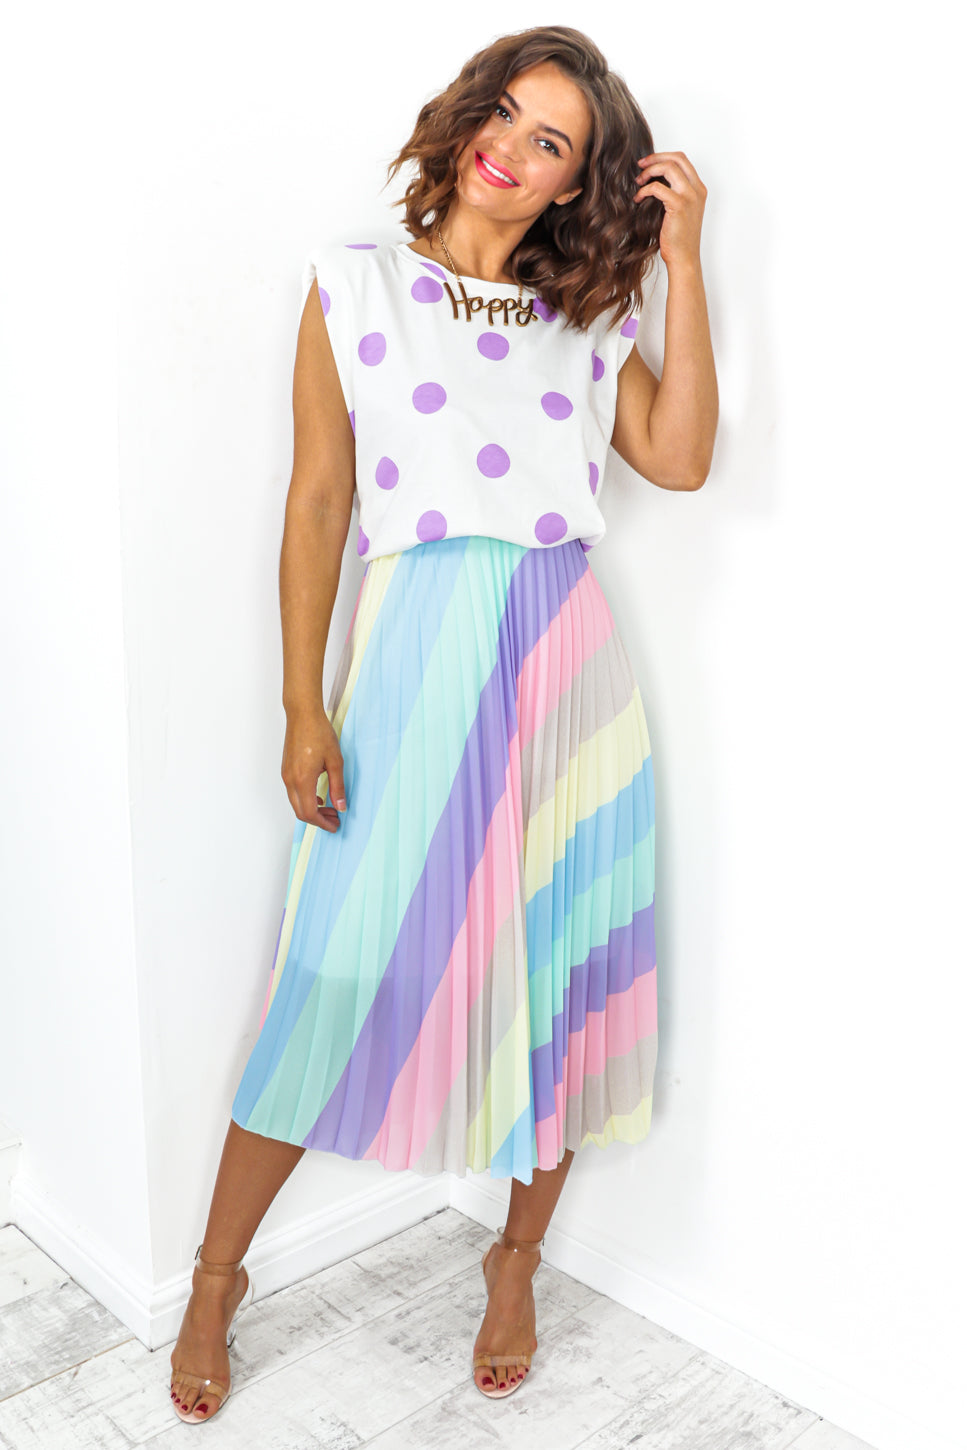 We'll Pleat Again - Skirt In PASTEL/STRIPE